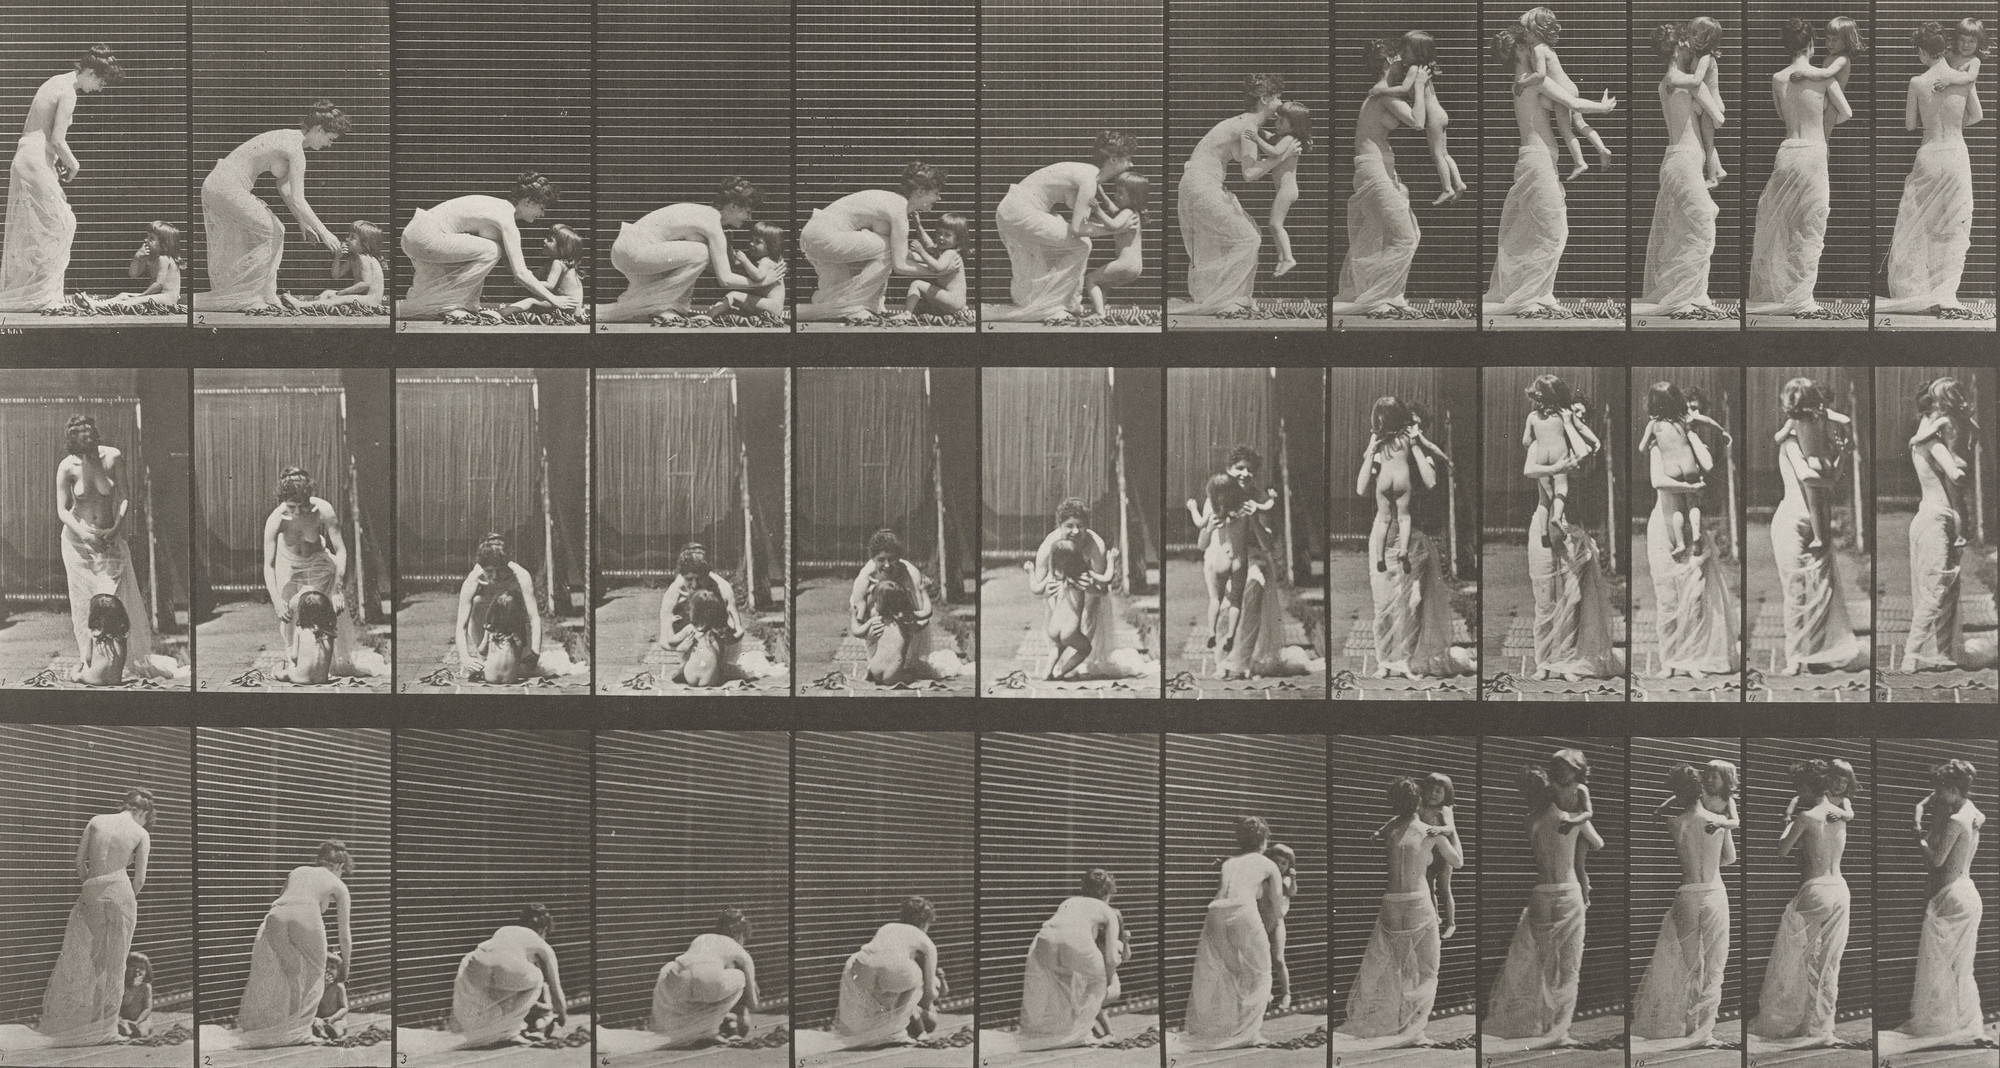 Eadweard J. Muybridge. Woman Lifting a Child from the Ground and Turning Around: Plate 214 from Animal Locomotion (1887). 1884-86